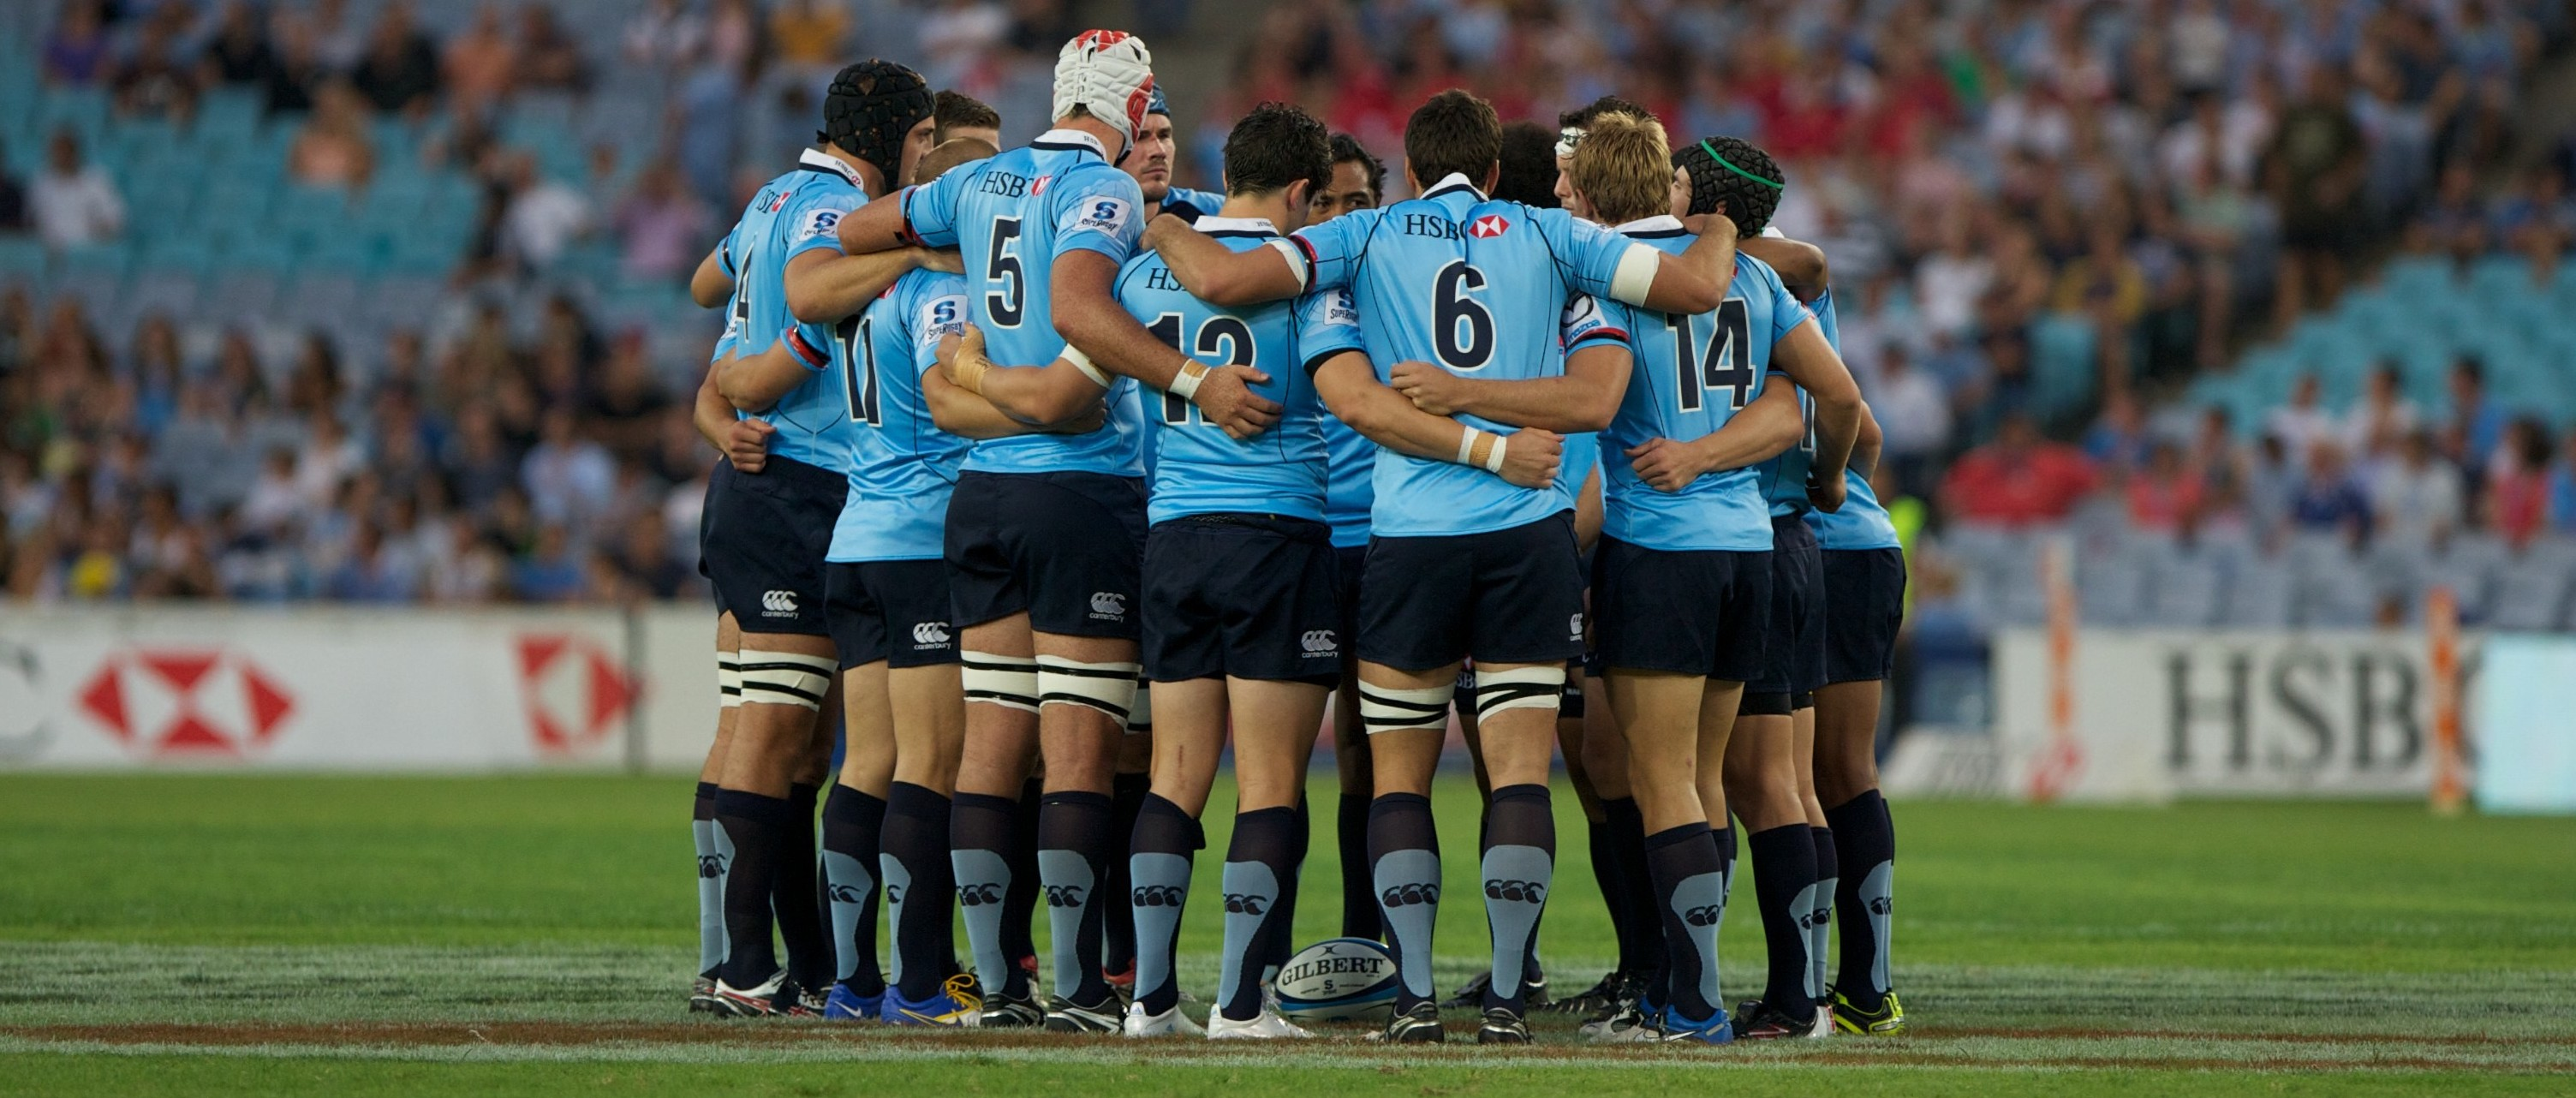 Waratahs huddle box